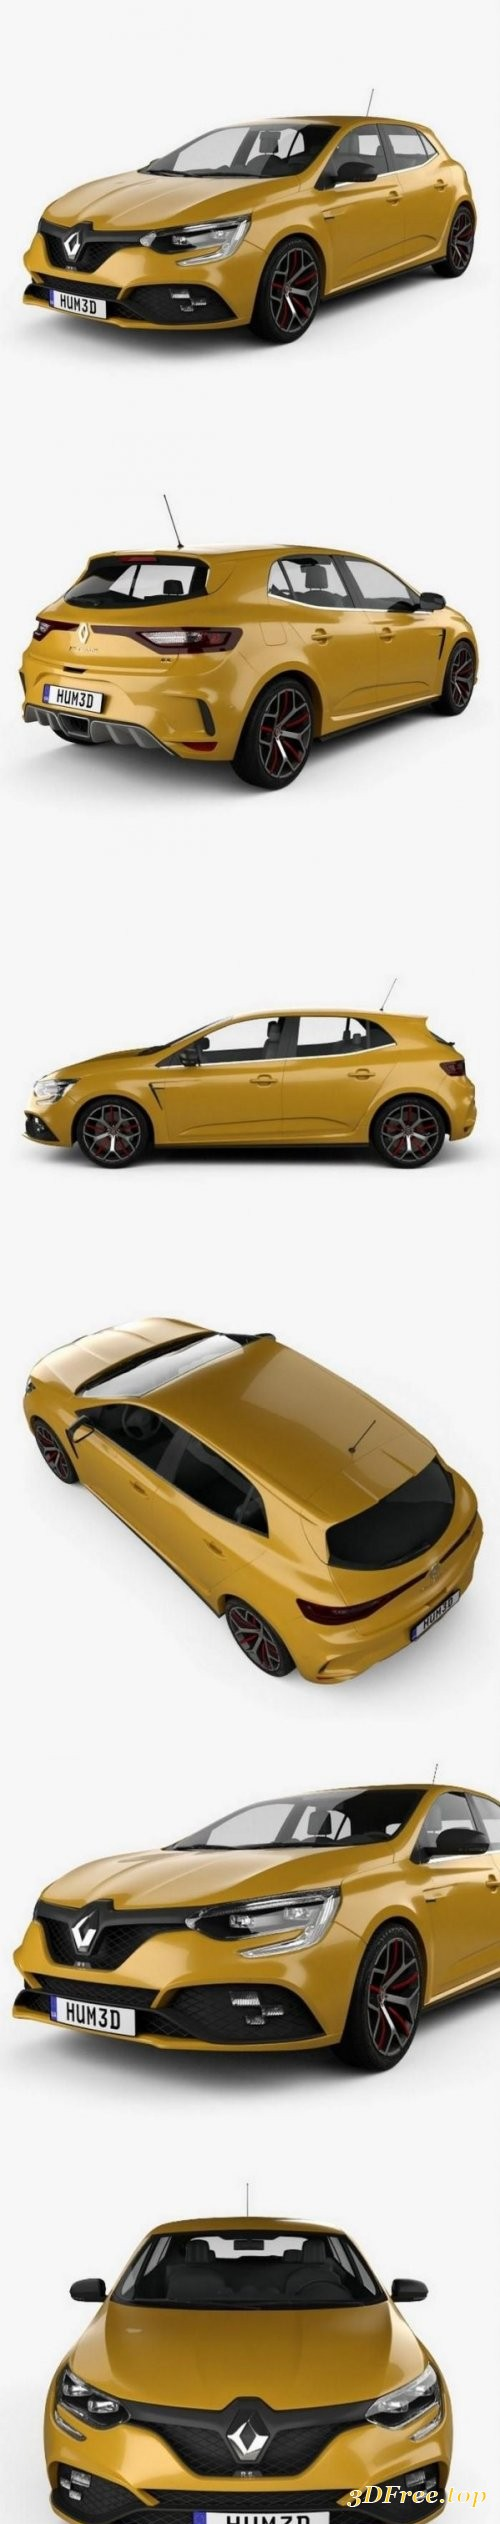 Renault Megane RS Trophy 300 hatchback 2018